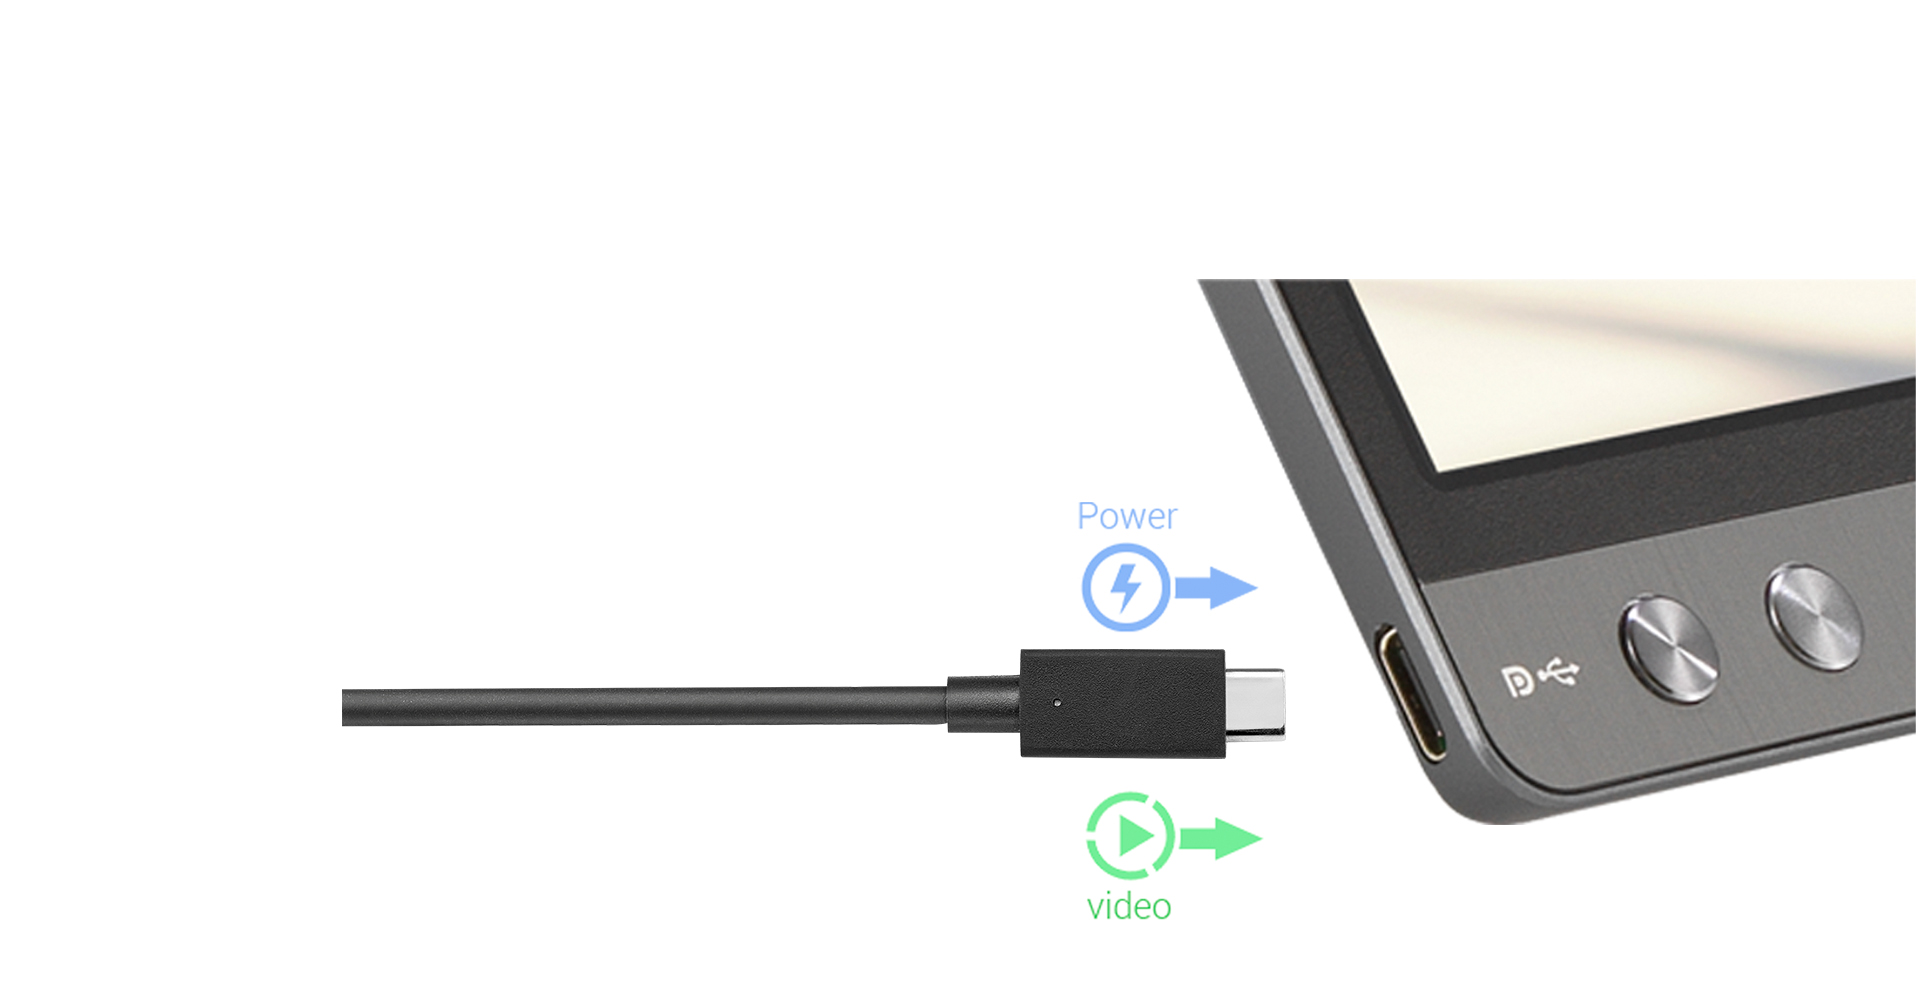 ZenScreen MB16AC features an hybrid-signal solution for USB Type-A and USB Type-C support